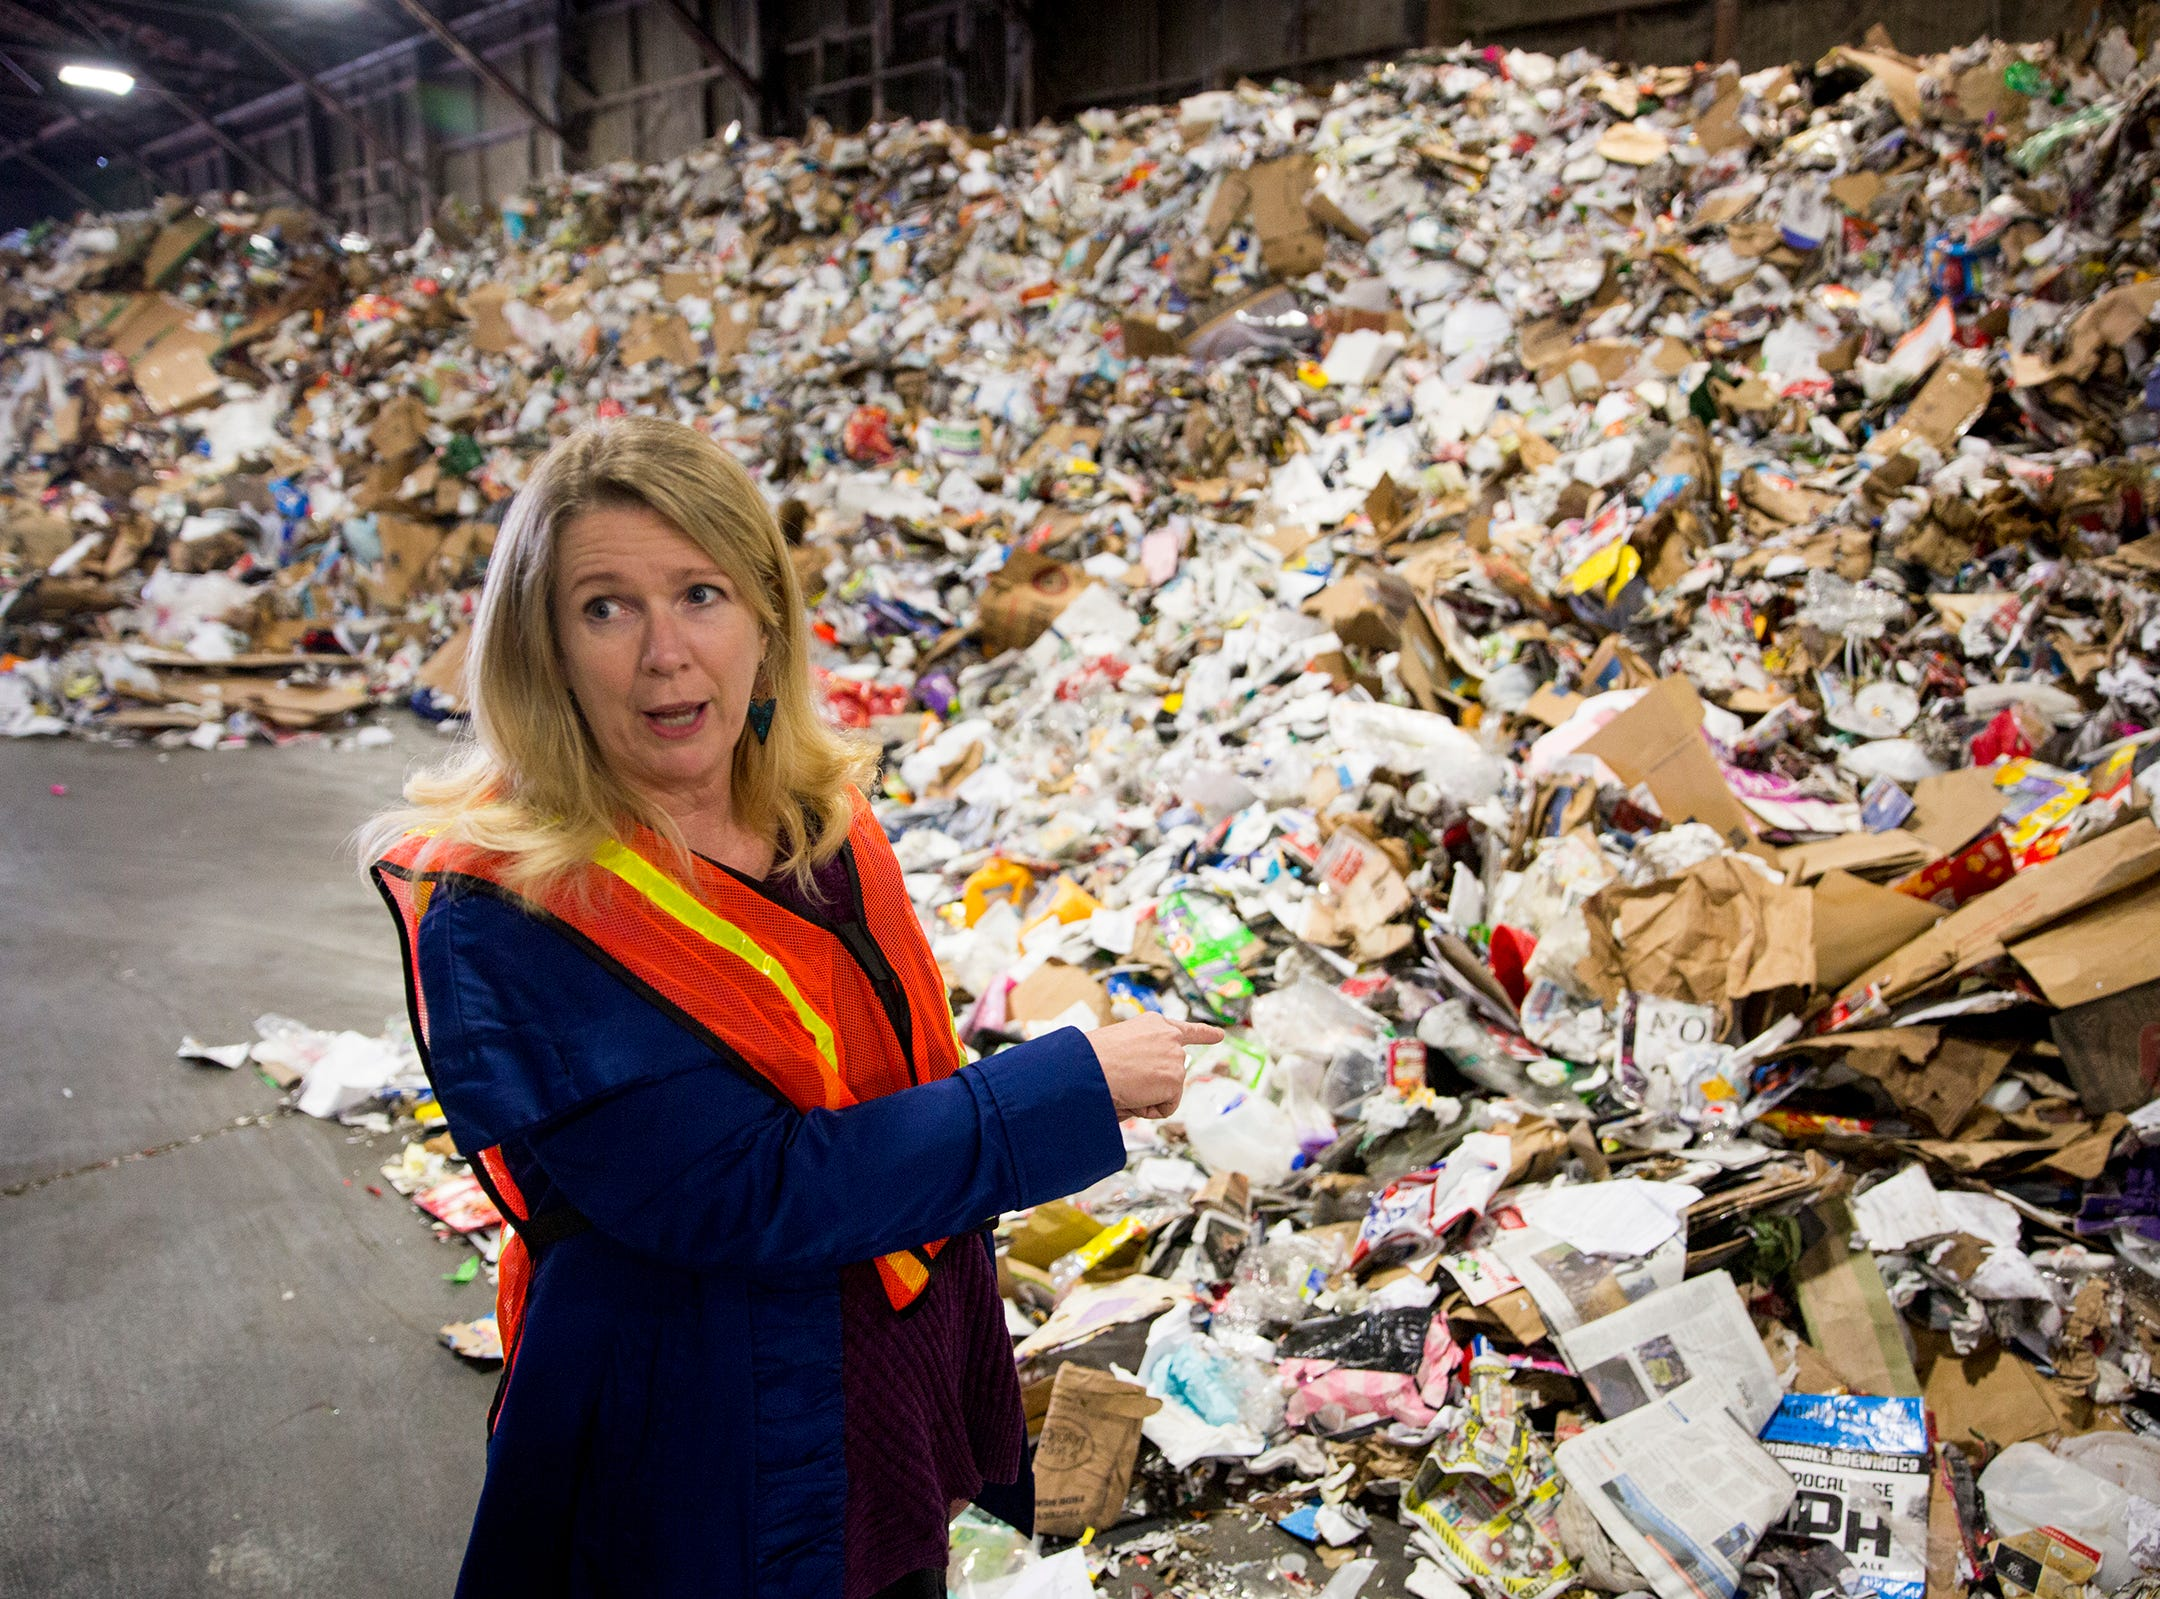 Resource Development Manager Gaelen McAllister points to the build up of items that cannot be recycled at Garten Recycling in Salem on Thursday, Dec. 20, 2018.